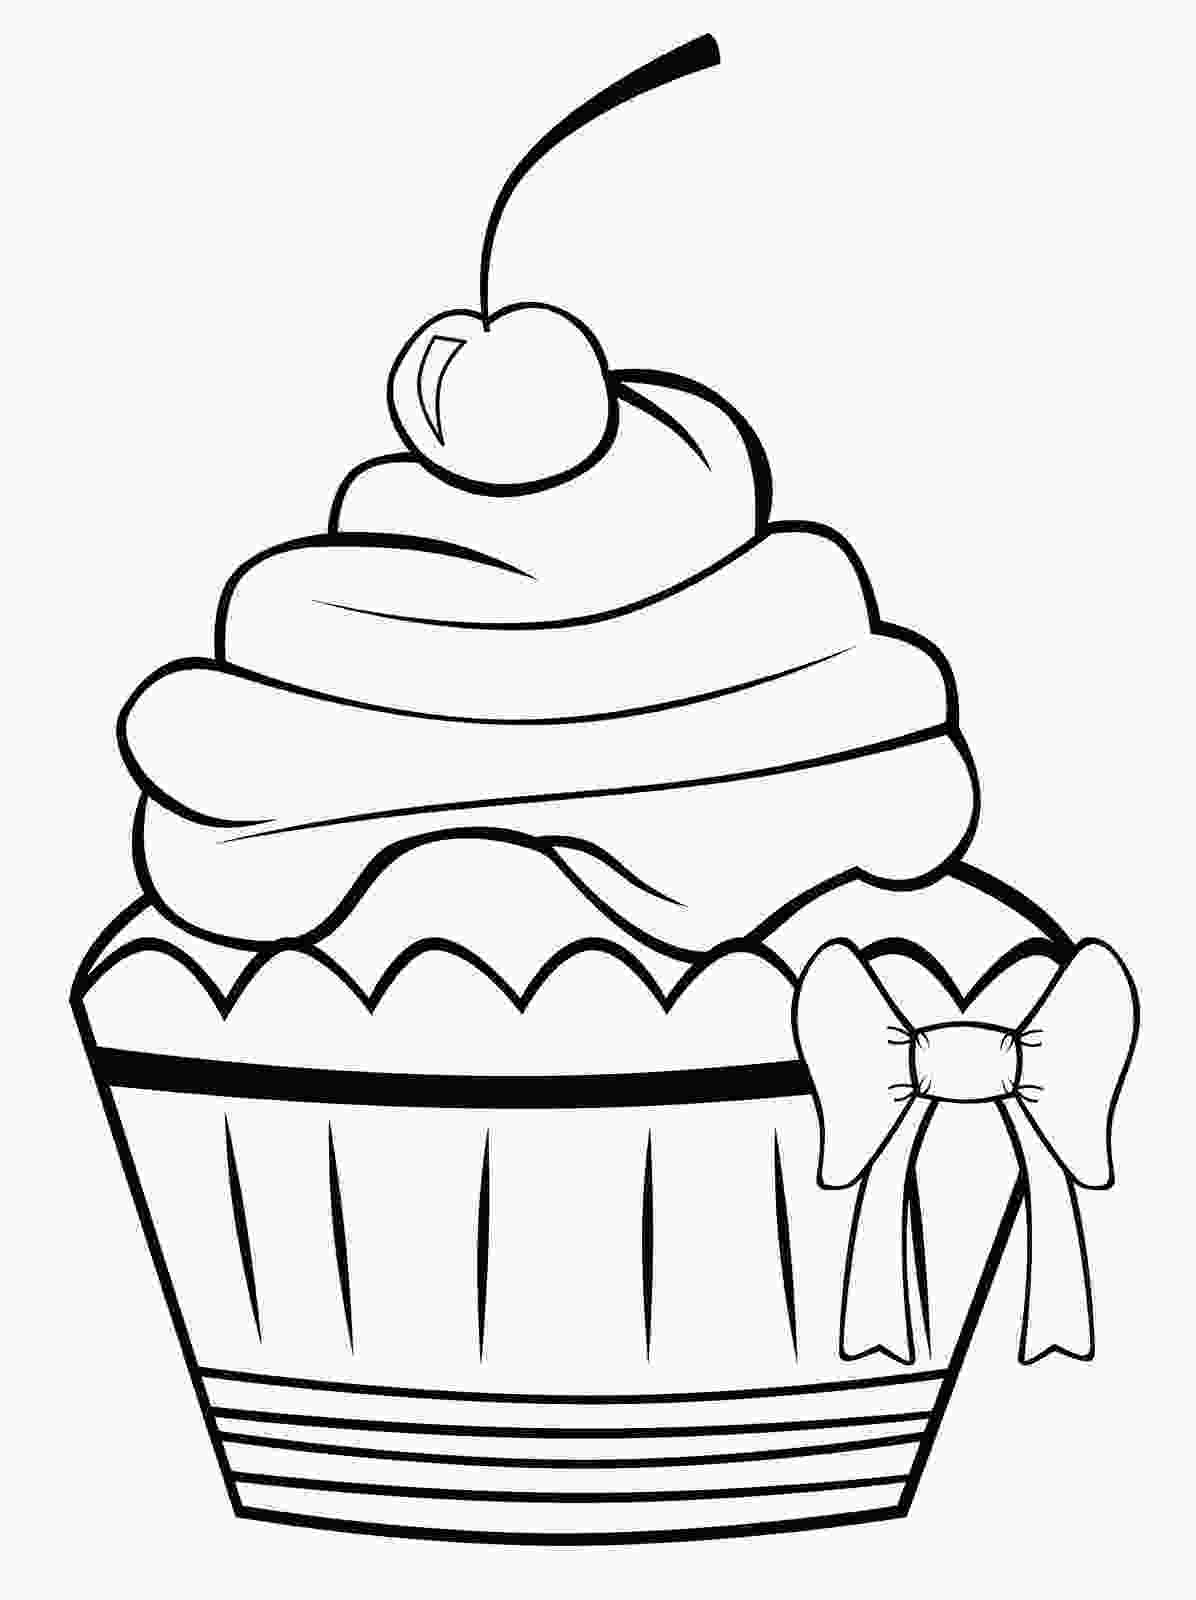 picture of cake to color cupcake coloring contest simply sweet online